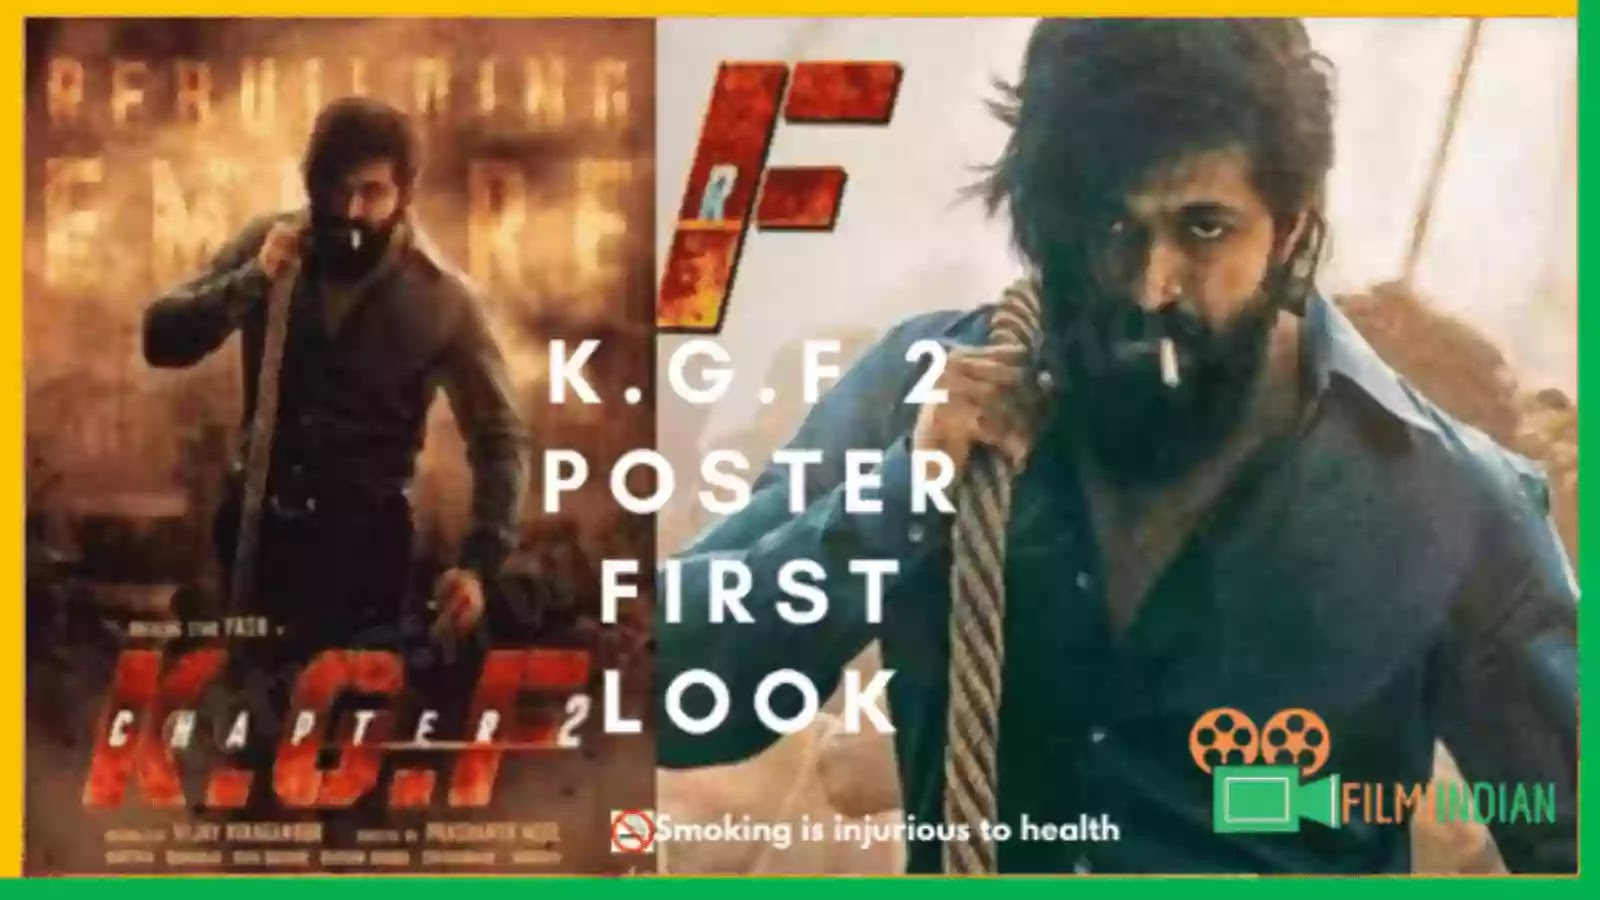 KGF : Chapter 2 Poster First Look : Best and Honest Review